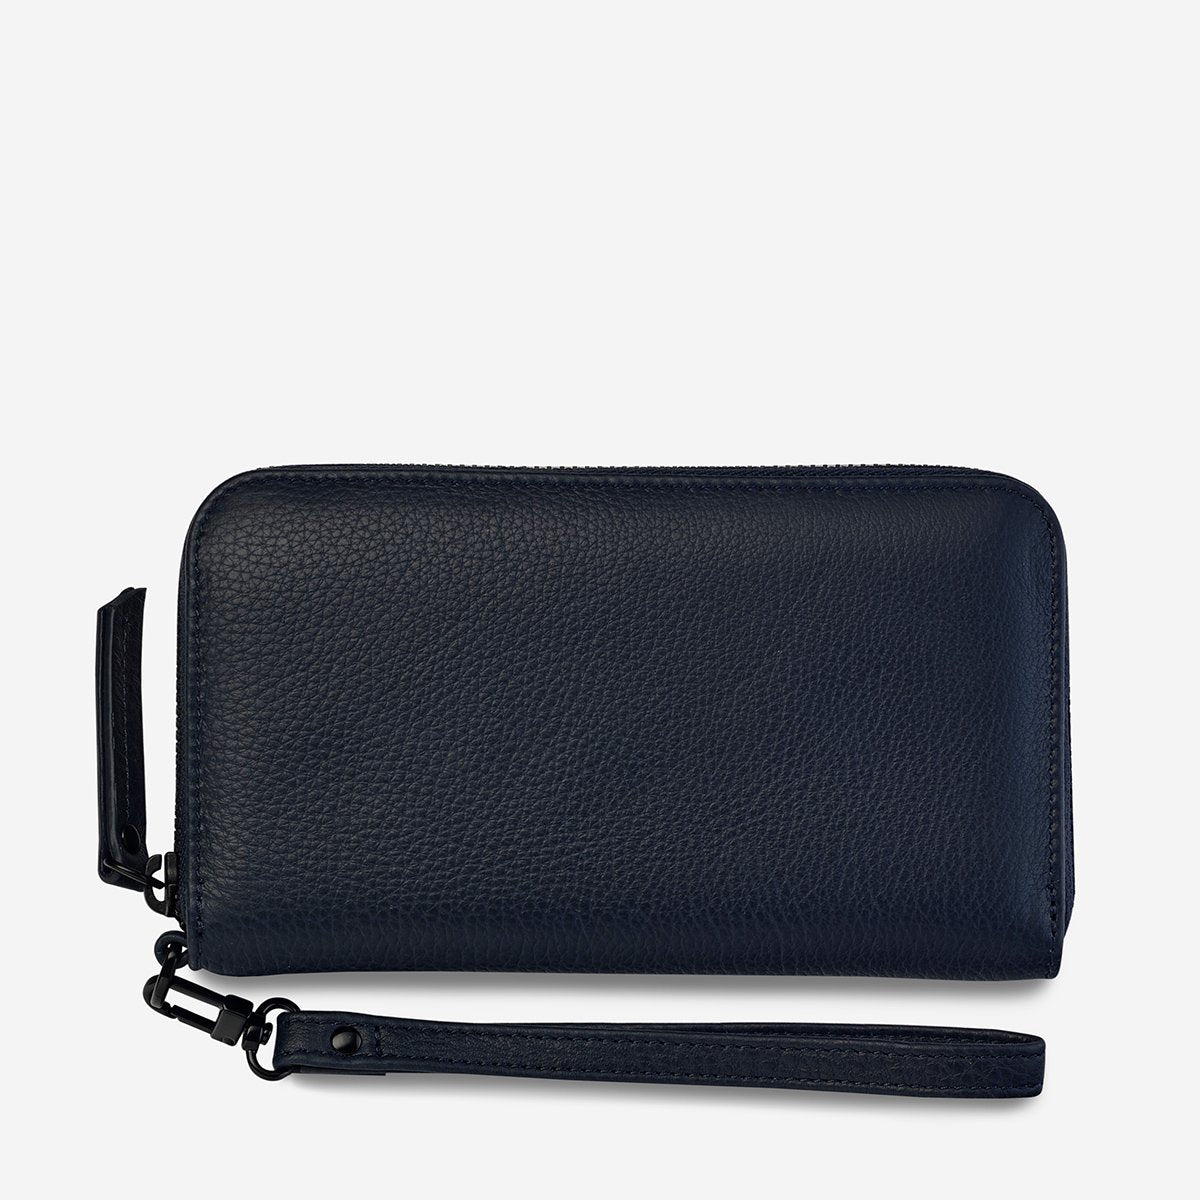 Moving On Wallet Navy Blue